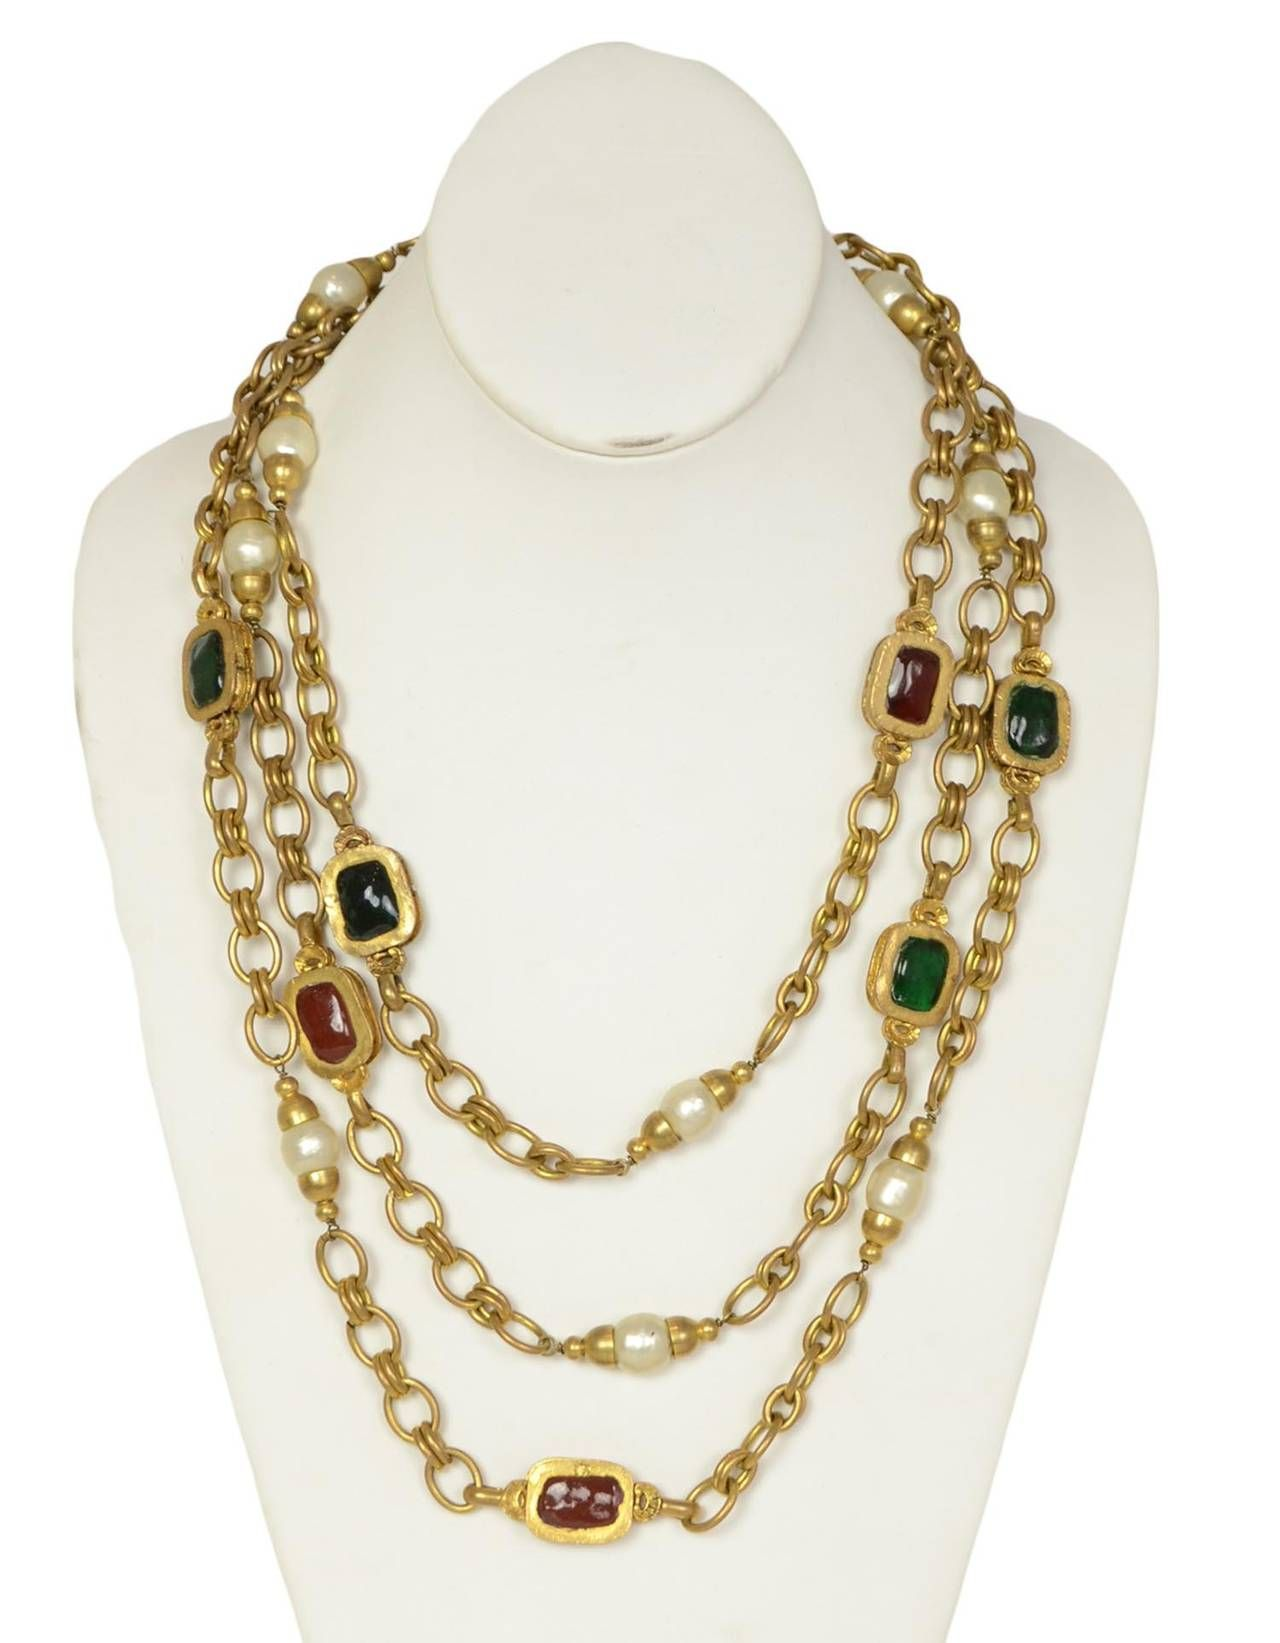 CHANEL Vintage Chain Necklace w/ Red and Green Gripoix and Faux Pearls c. 1984